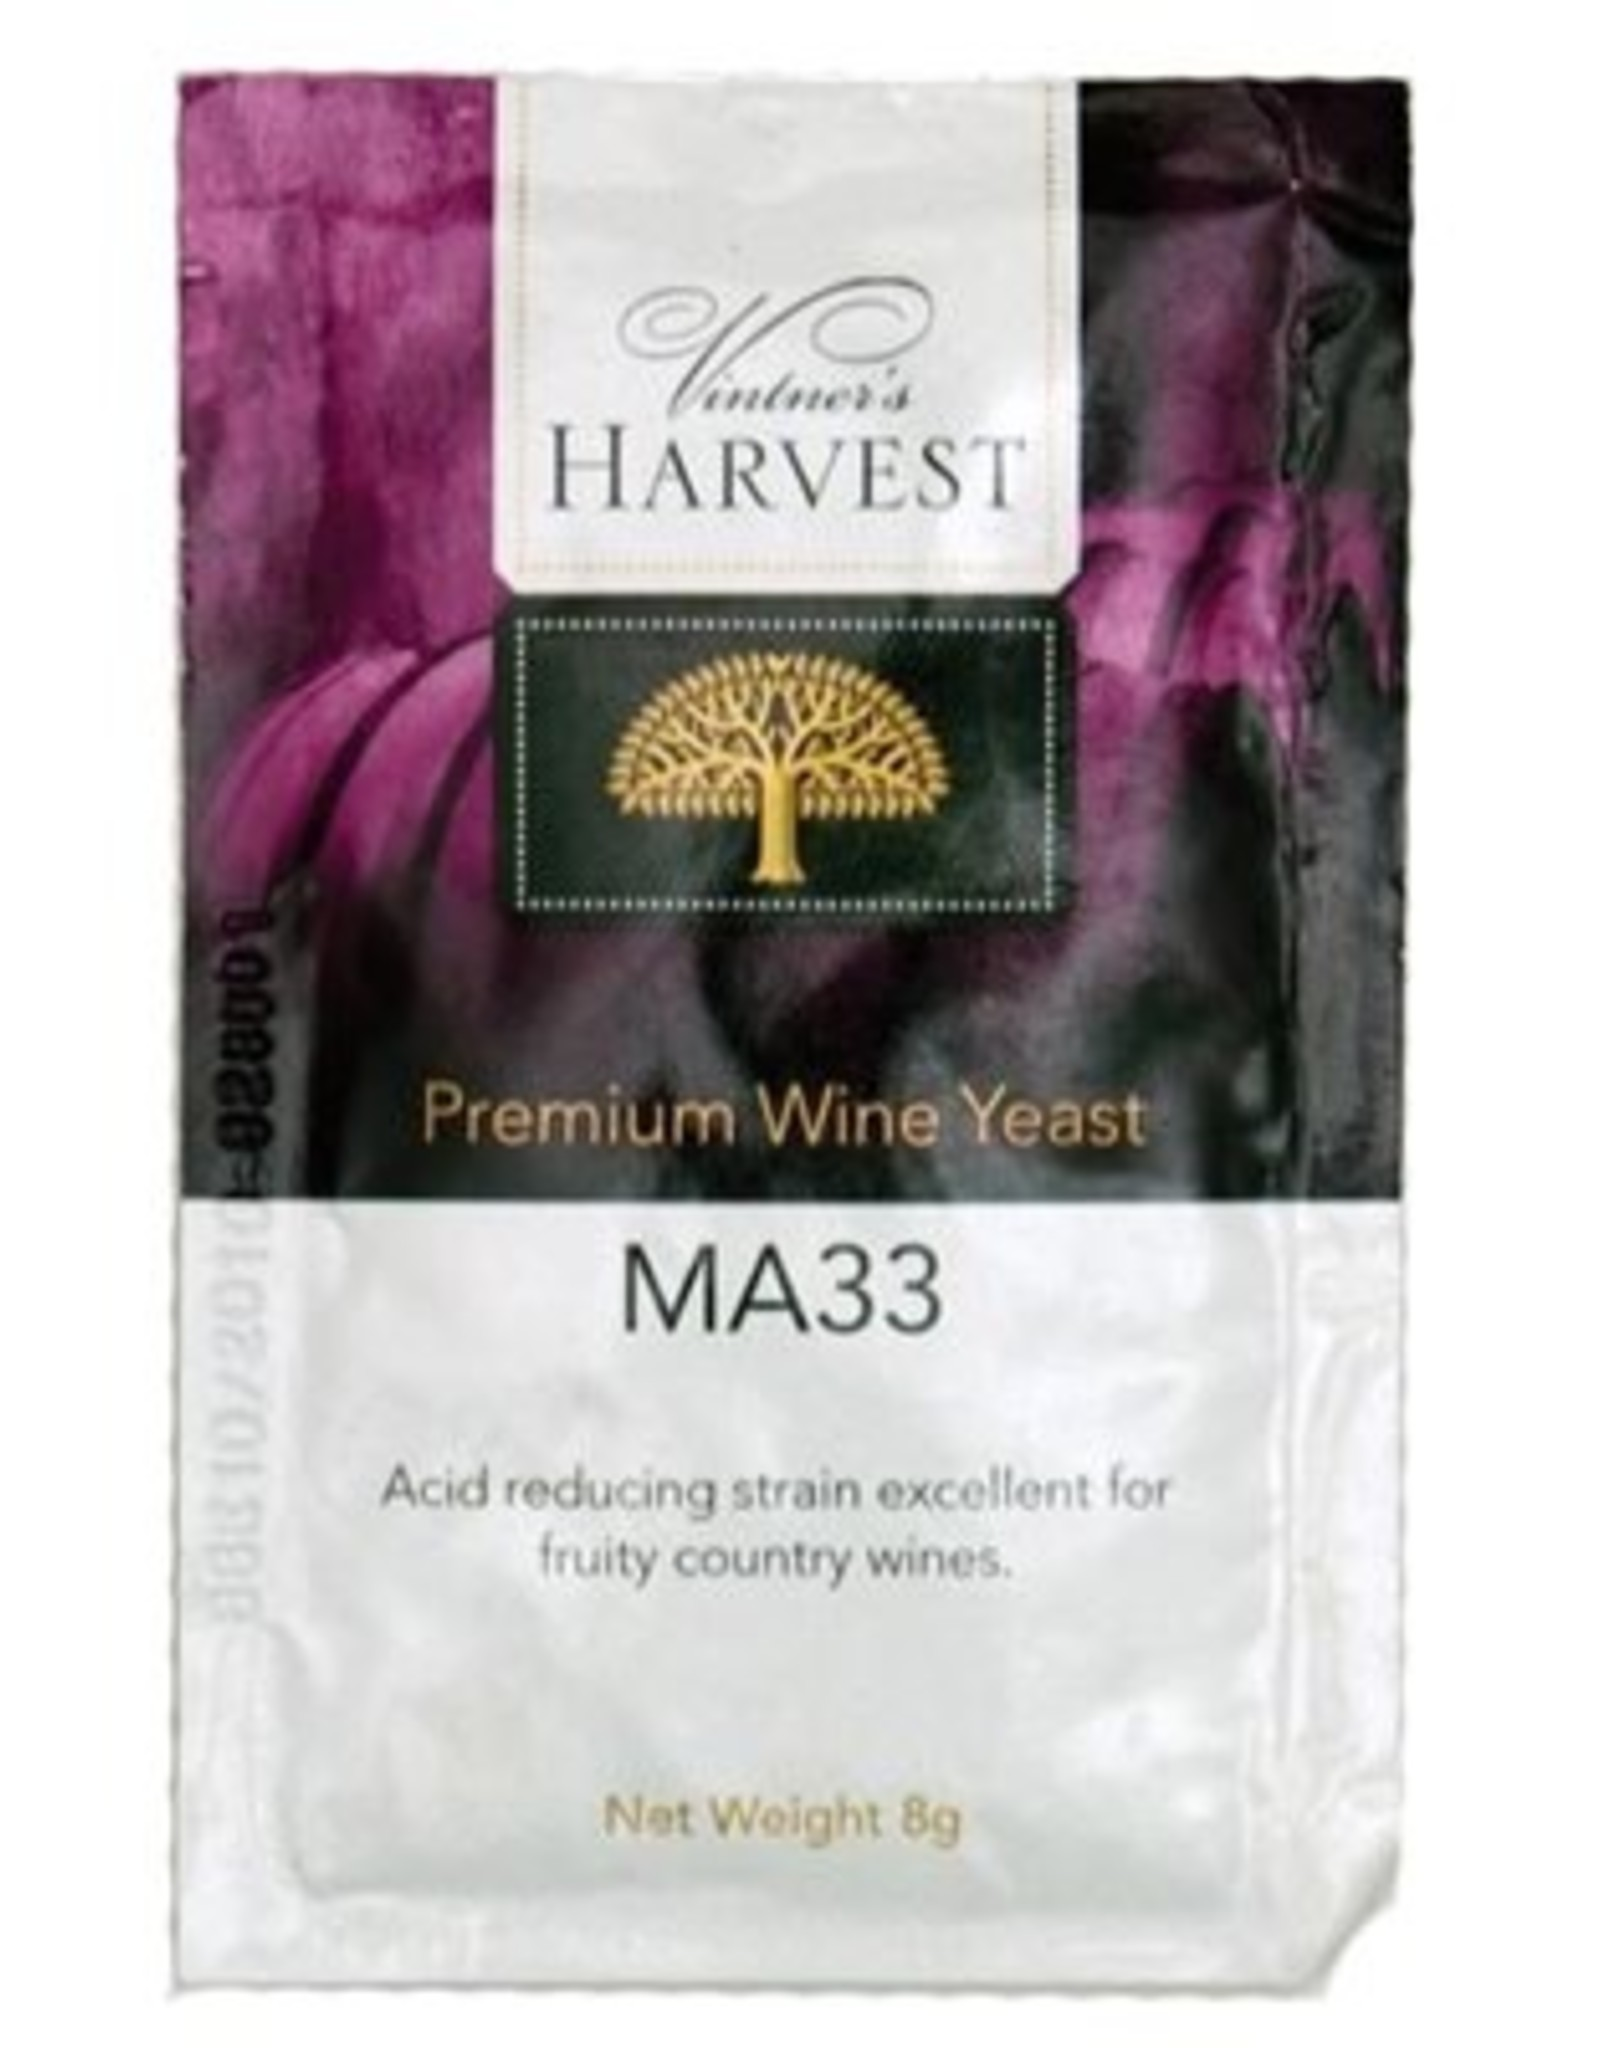 MA33 -JACKGROVE JACK'S WINE YEAST 8g